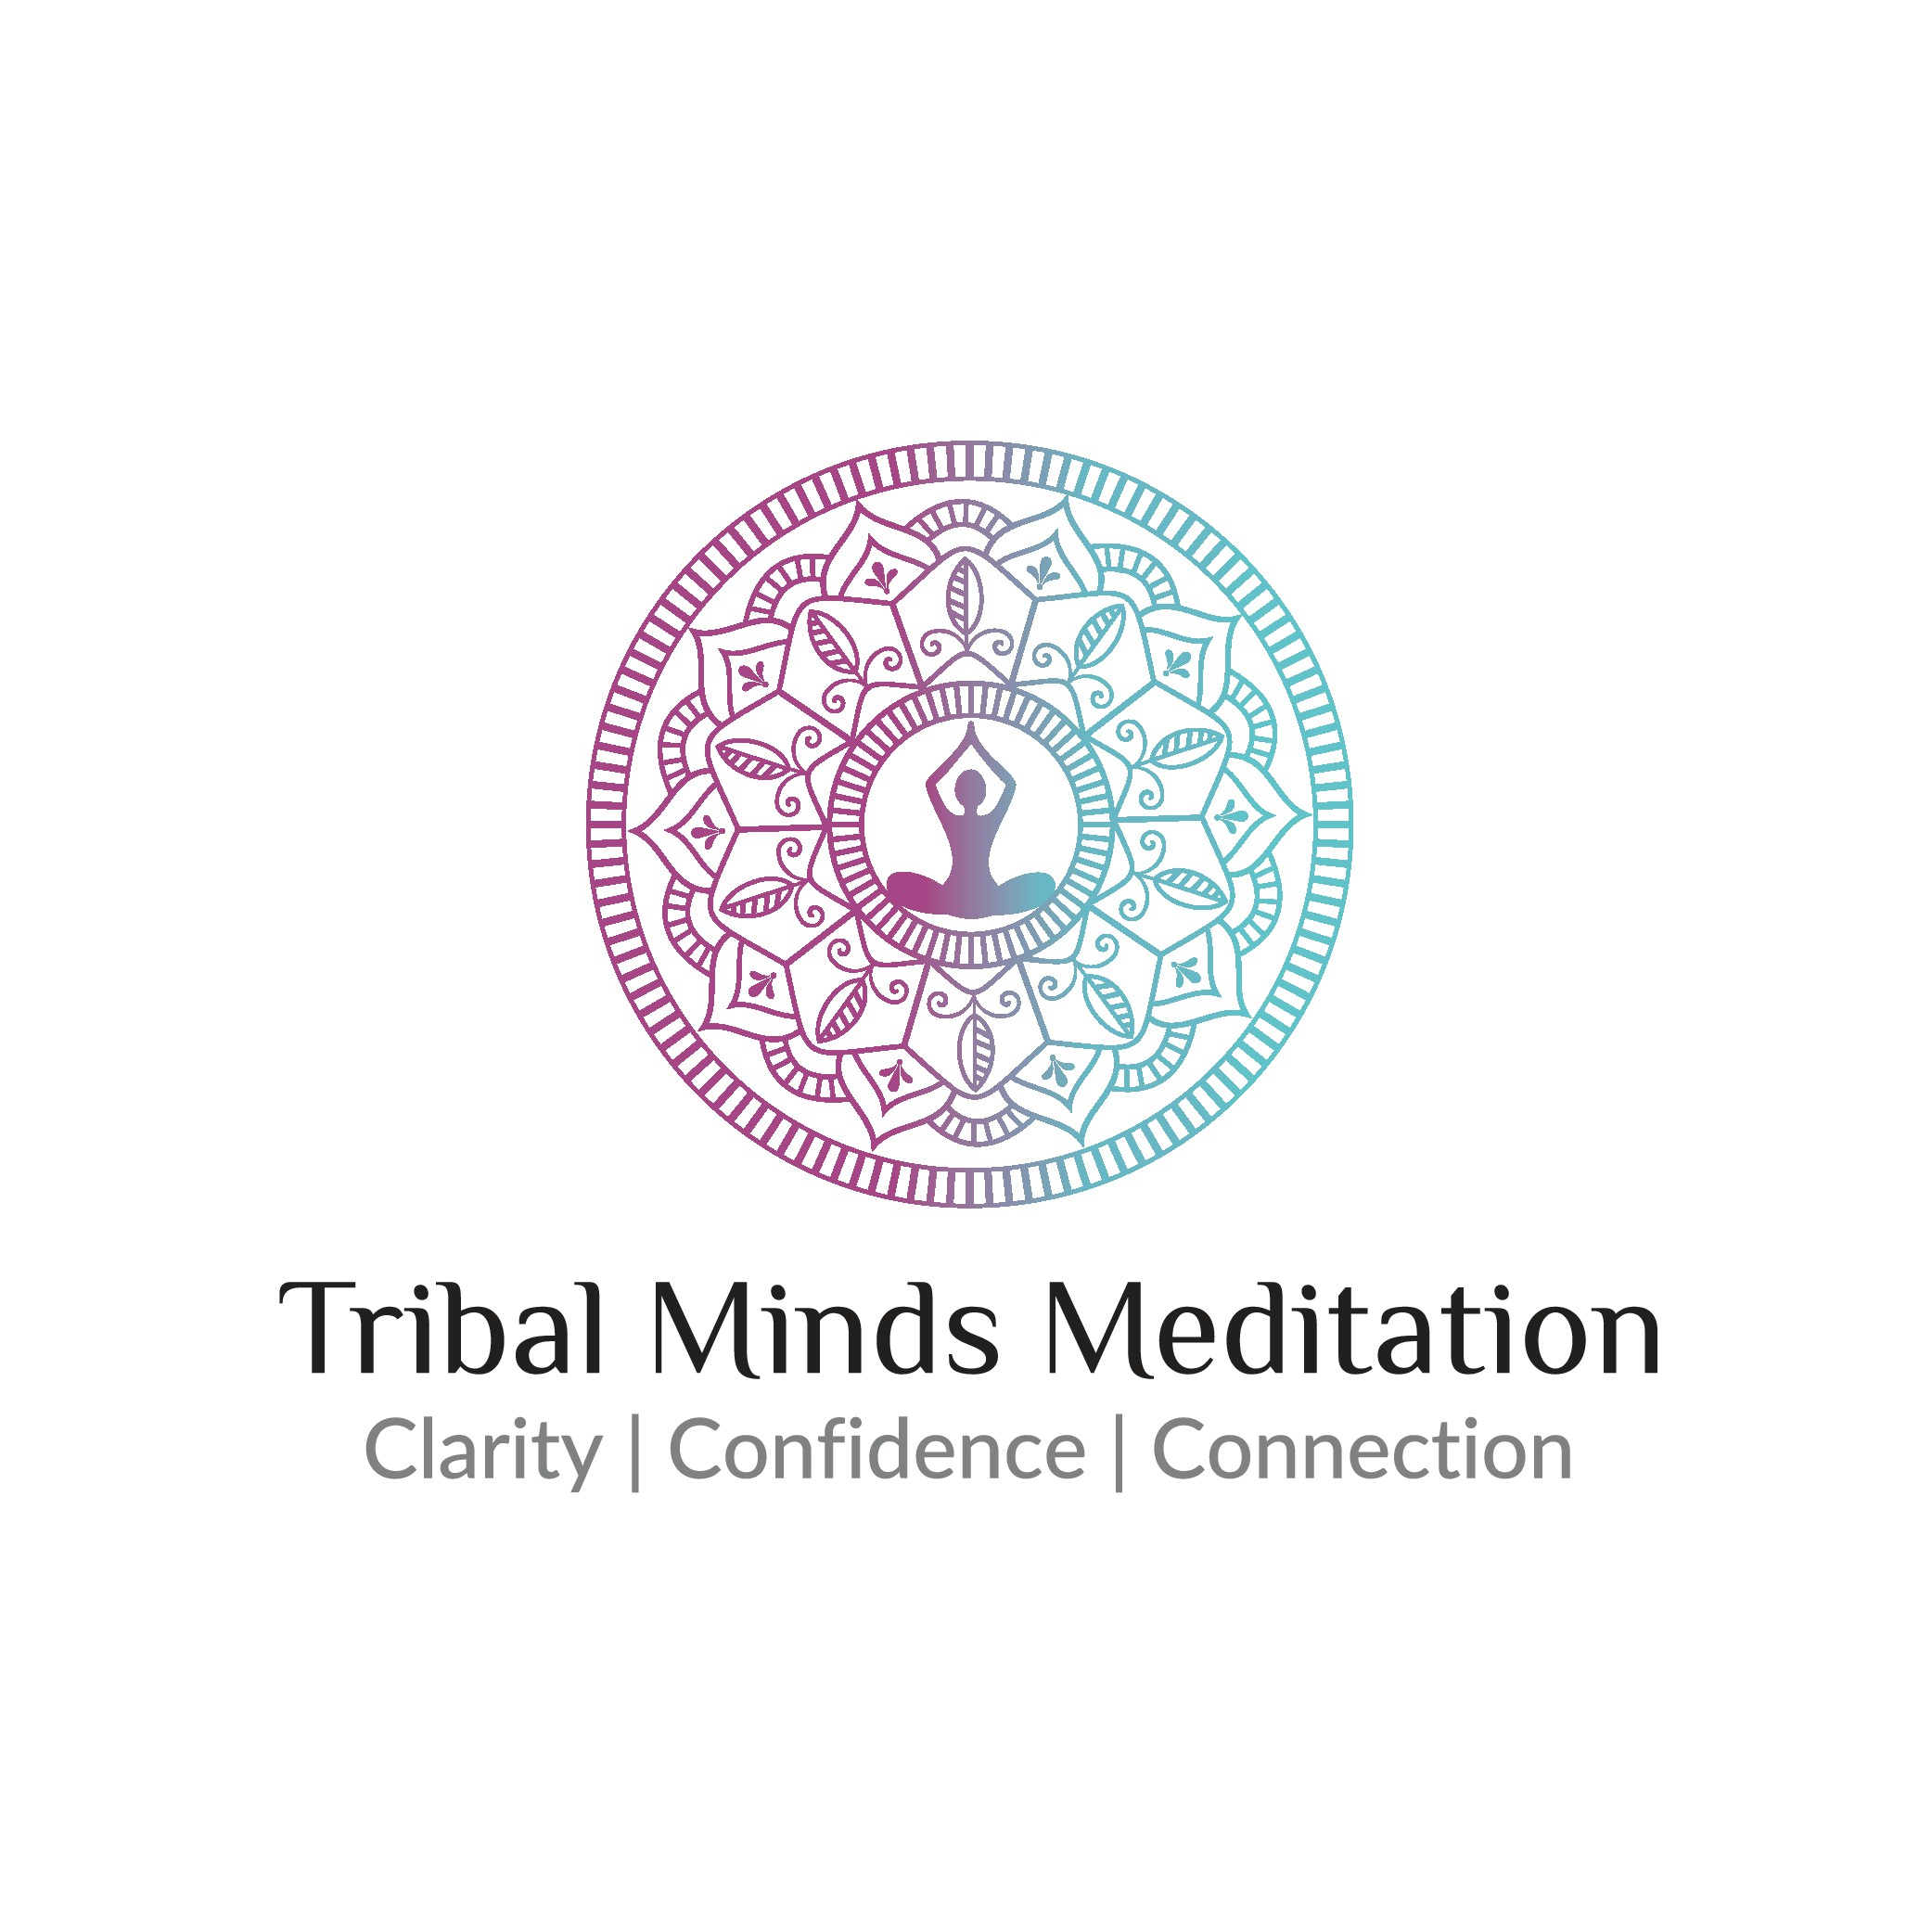 create a powerful & soulful logo for peace and enlightenment